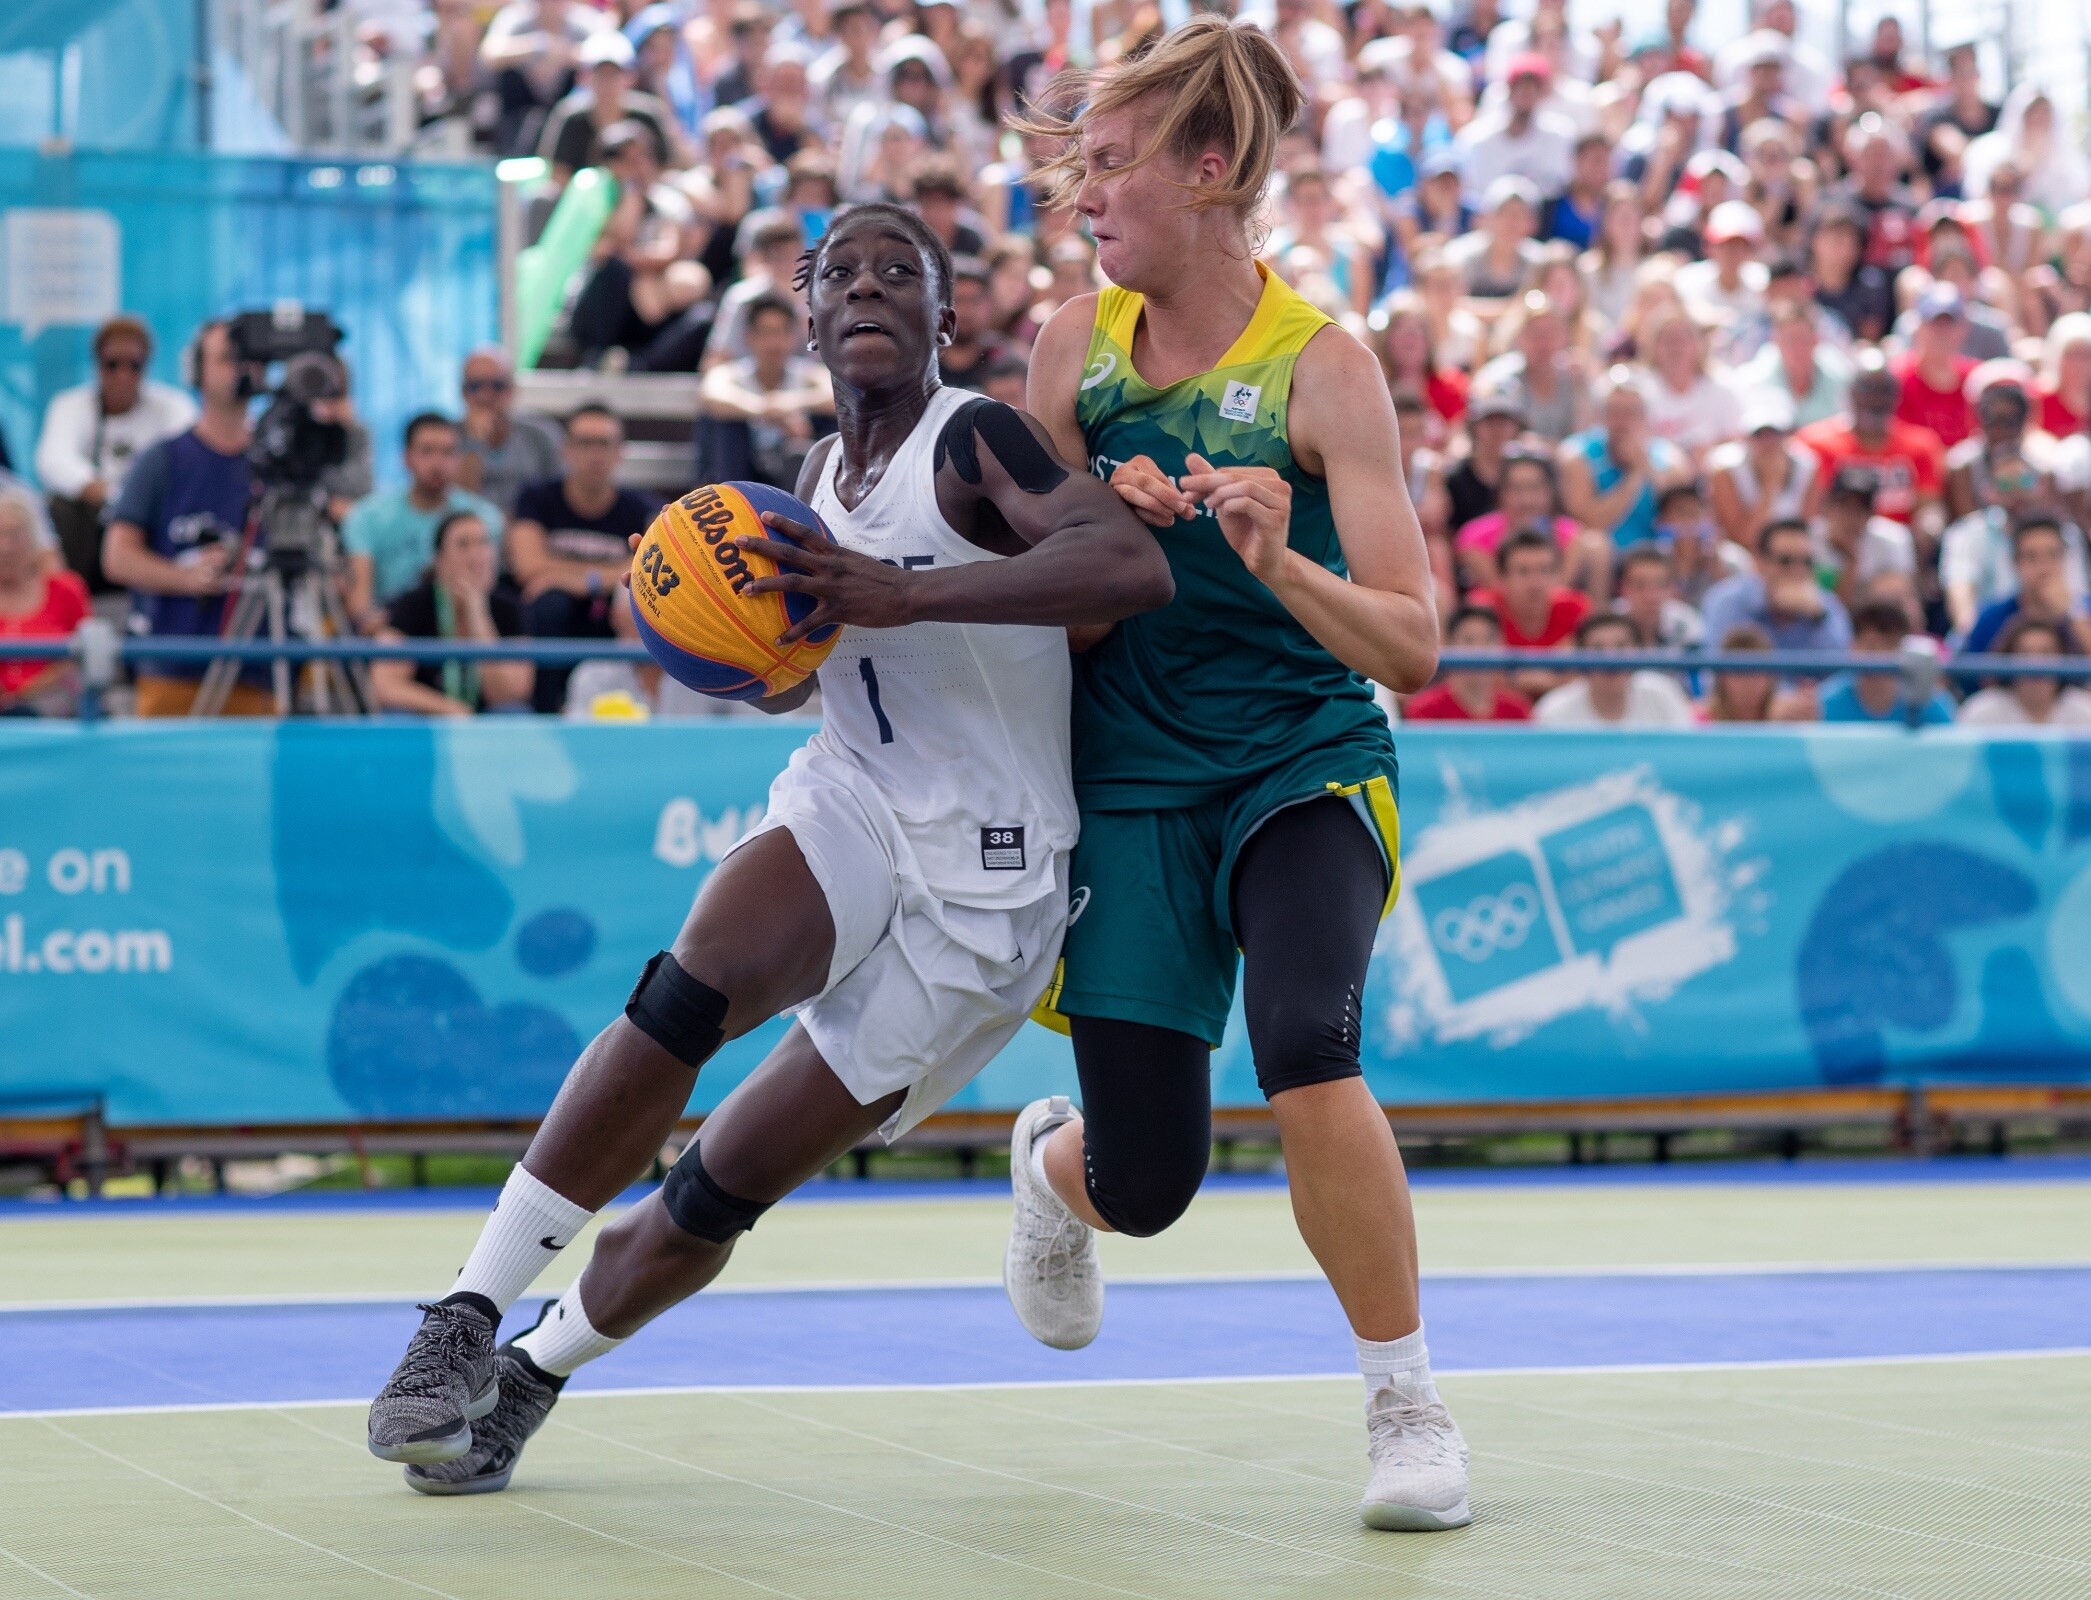 Buenos Aires 2018 - Basketball 3x3 - Women's Tournament